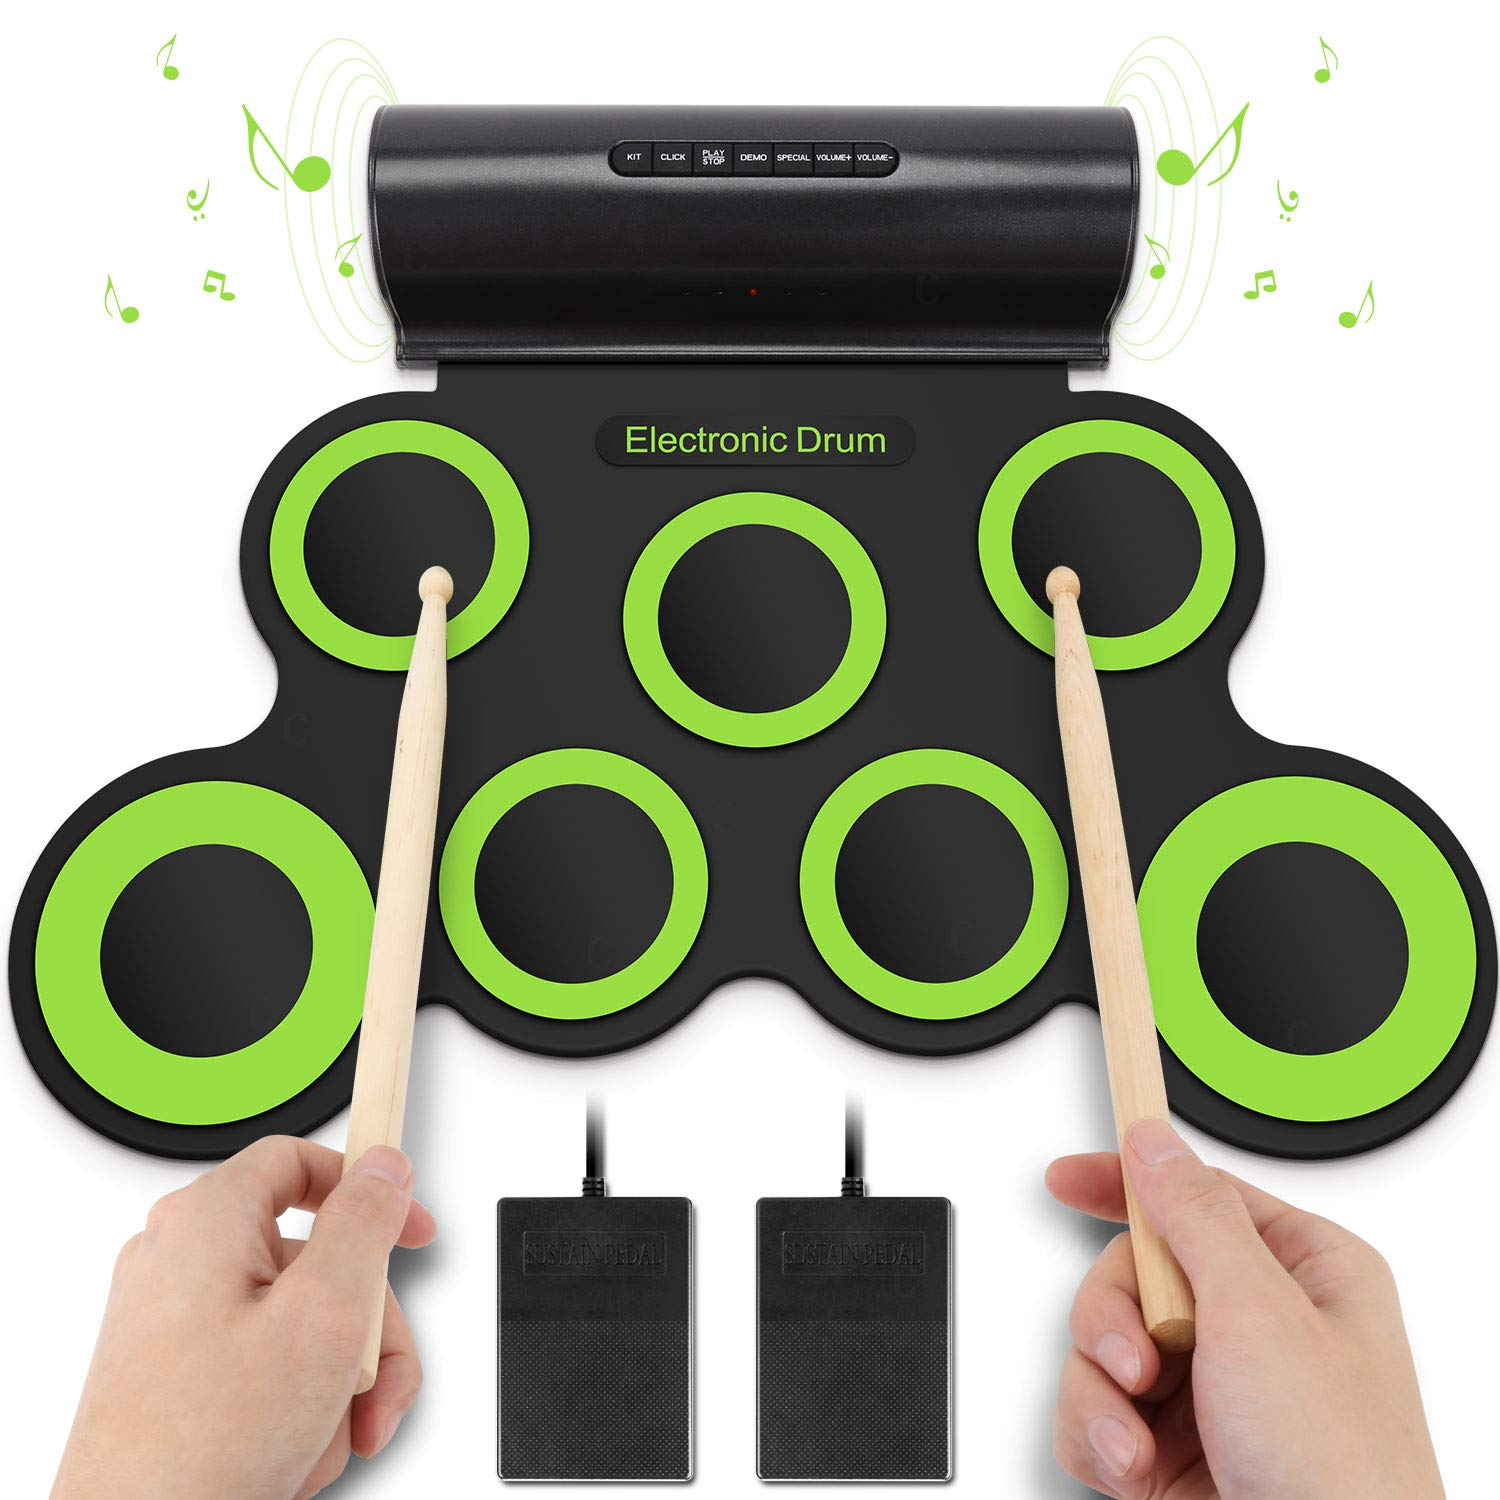 YISSVIC Electronic Drum Set Roll Up Drum Kit Pad Foldable Portable Kids Practice Drum Pad with Headphone Jack Built-in Speaker Foot Pedals Drum Sticks For Kids or Beginner Earthly Paradise US